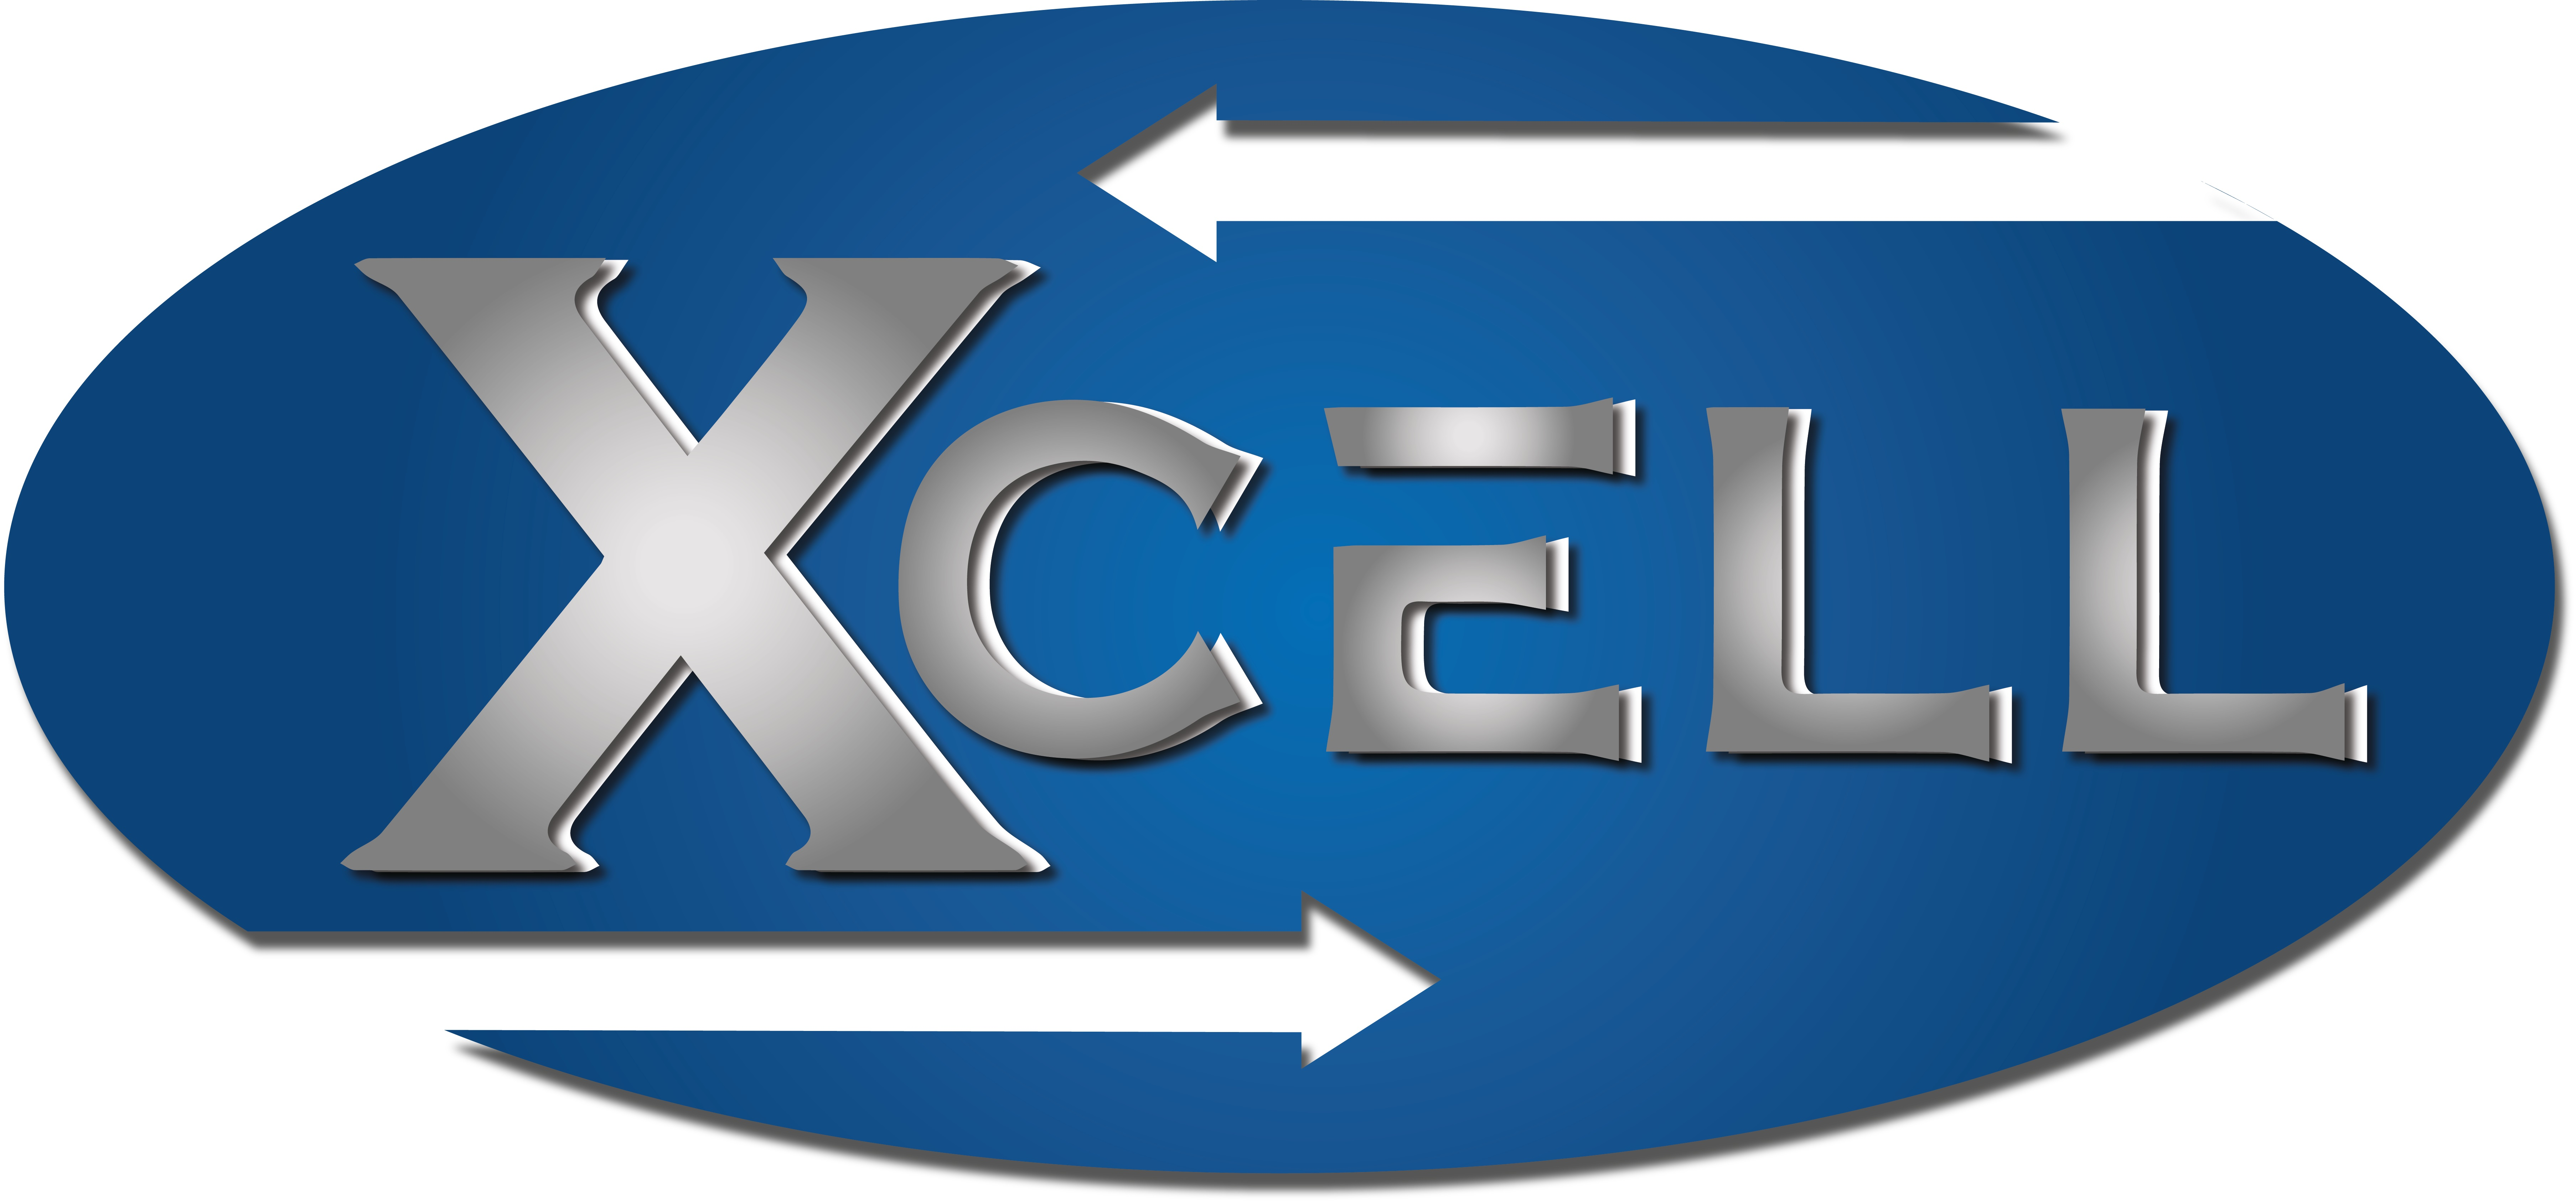 xcell logistic logo